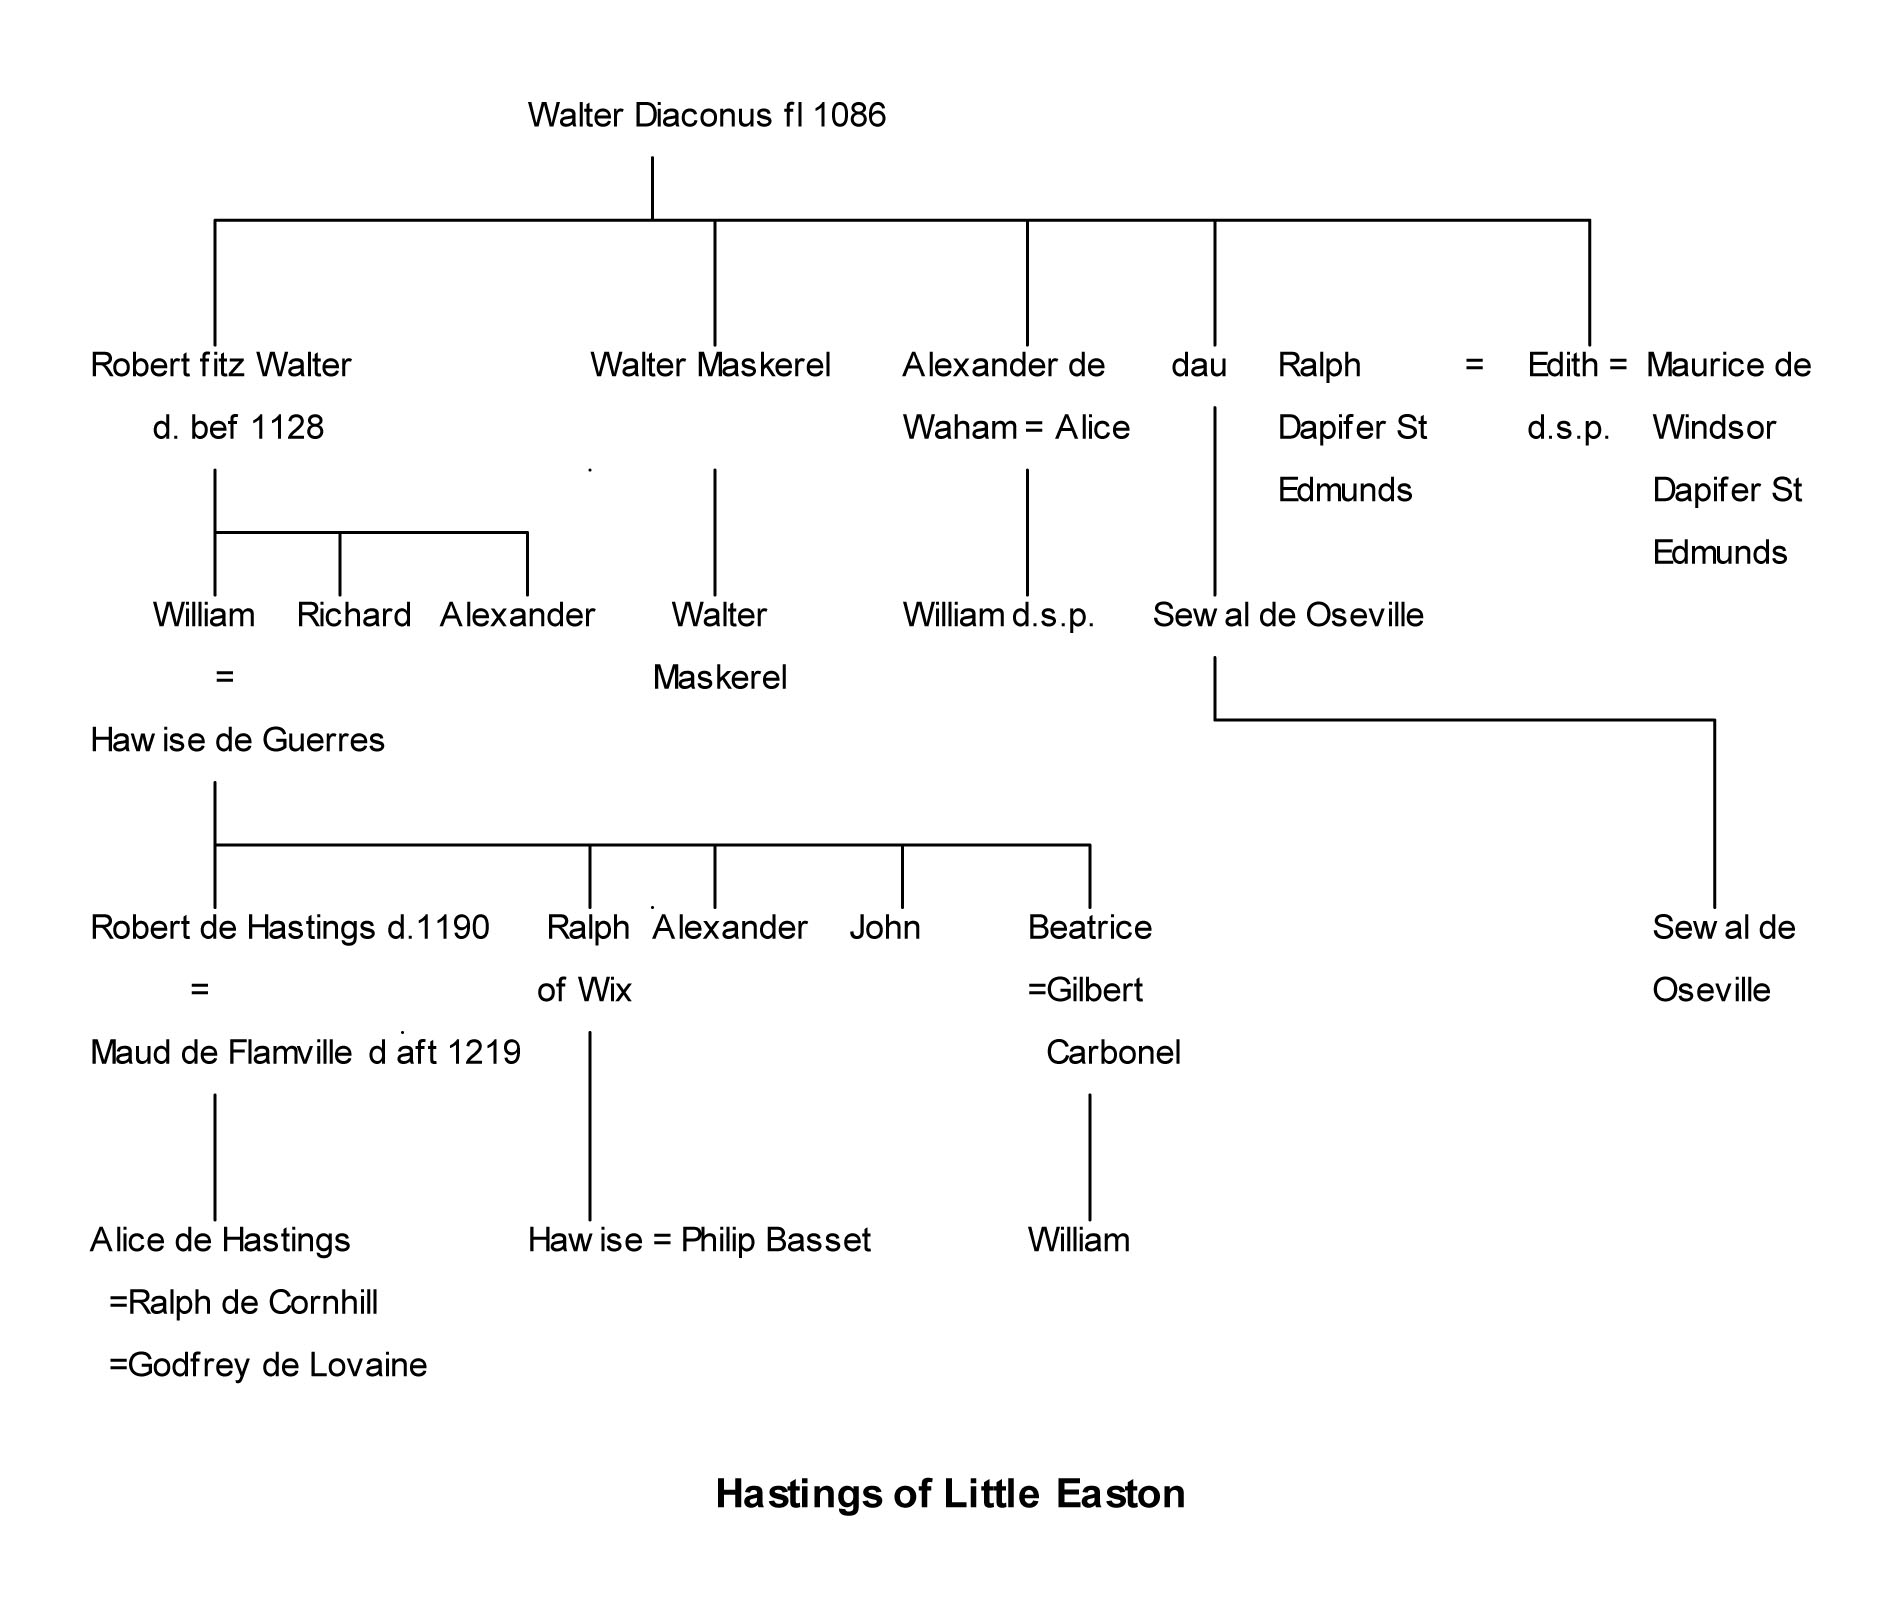 Pedigree of Hastings of Little Easton